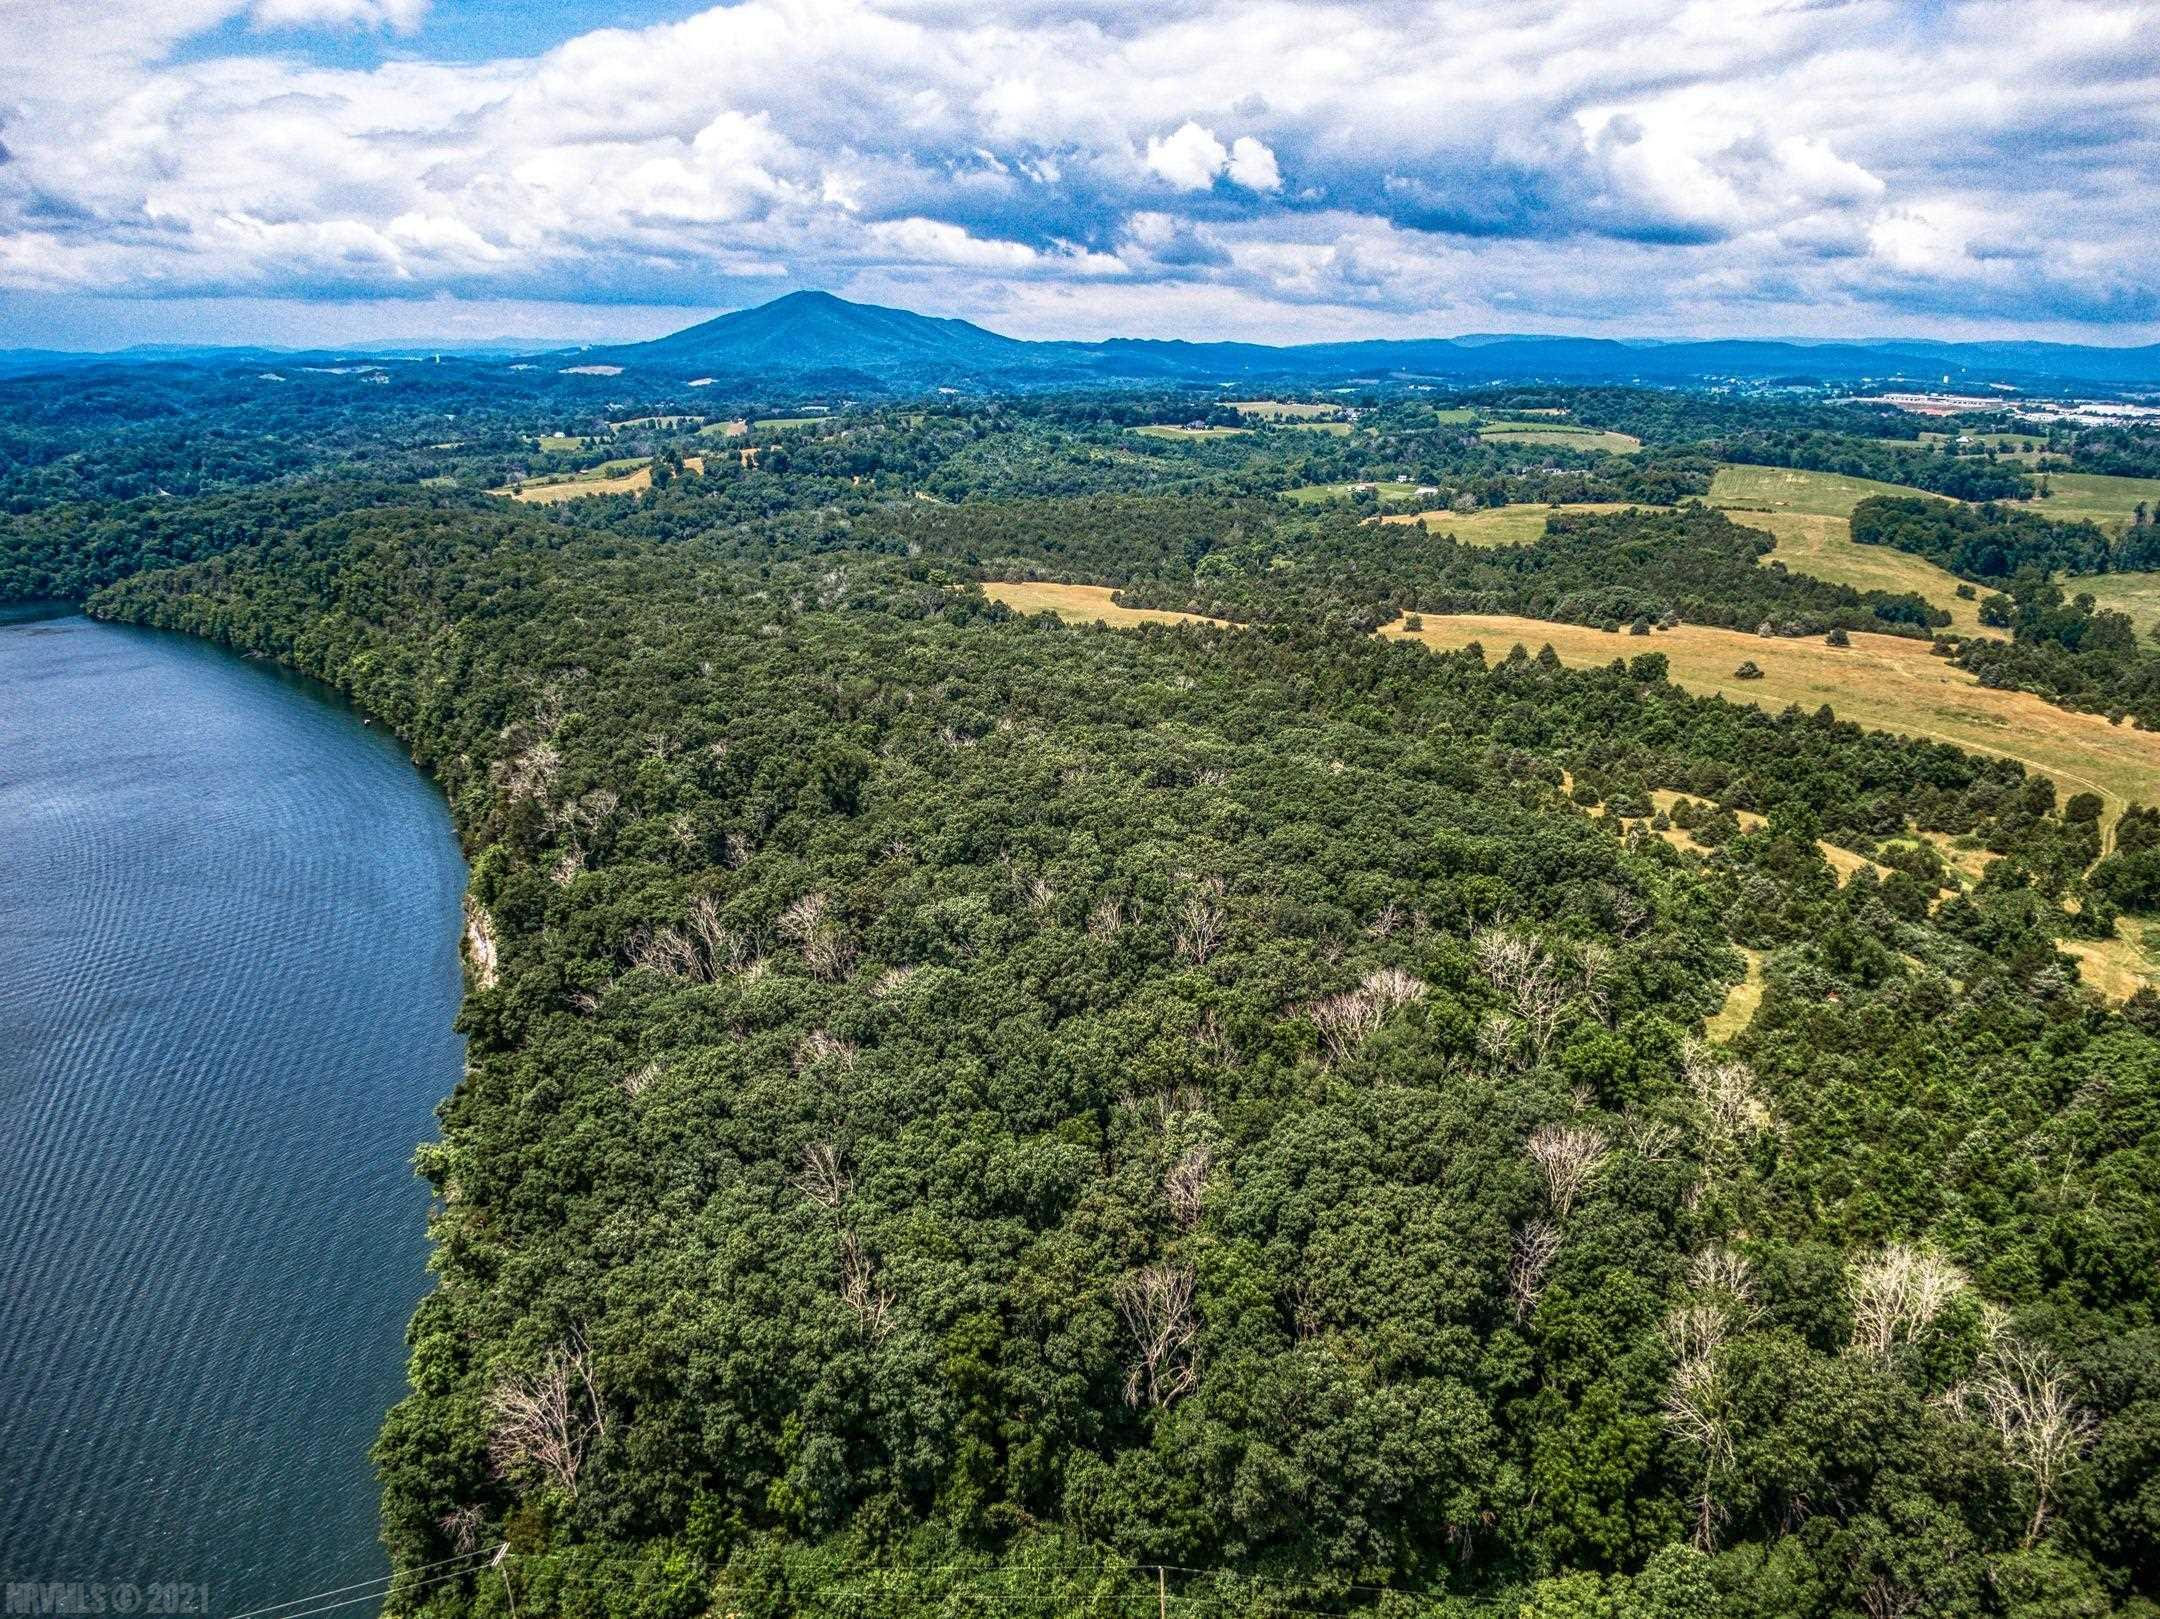 Rare opportunity for property located on  pristine Claytor Lake.  Spectacular long range lake and mountain views. 240+/- acres of land that lends itself to an excellent development opportunity, private estate or compound.  The 3,940' of lake frontage is phenomenal. High bluff with water access, large timber, pond and stream make this property and it's potential limitless. A stunning and unique large tract of rolling, wooded and pastoral land on Claytor Lake is unheard of, so don't miss this opportunity to see it.